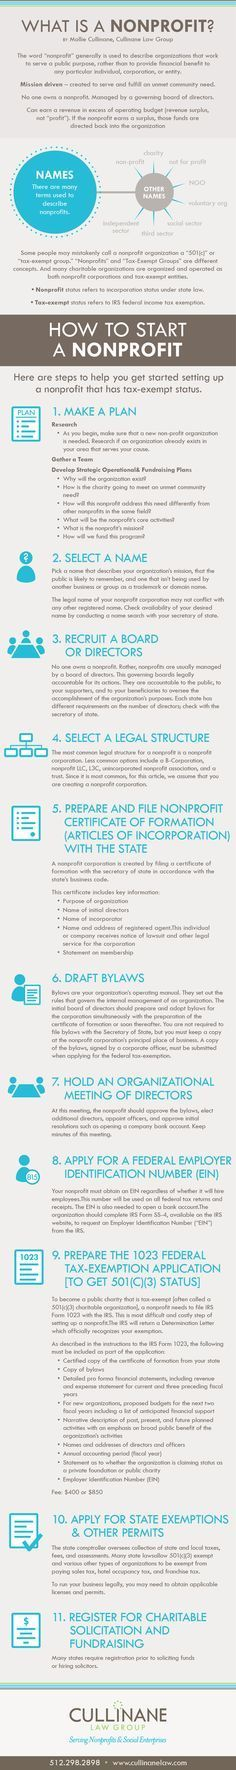 How to Start a 501c3, How to Start a Nonprofit JaBOS social market